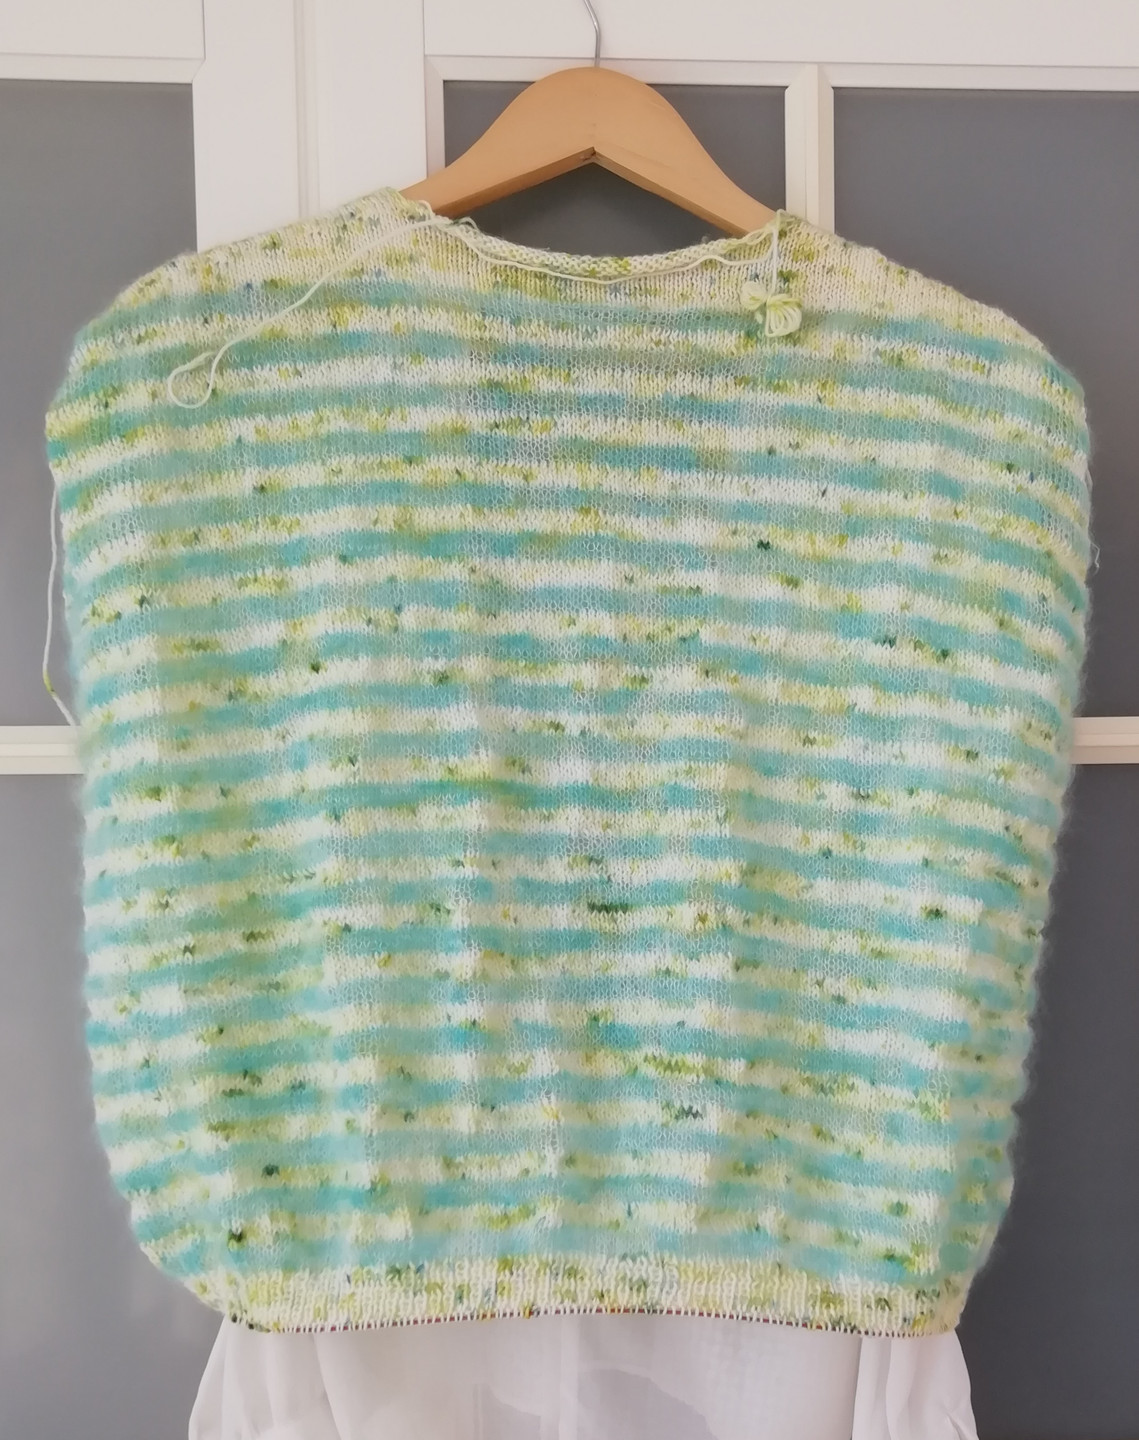 Spring Fresh 4ply & Verdigris Lace by Hennypennymakes